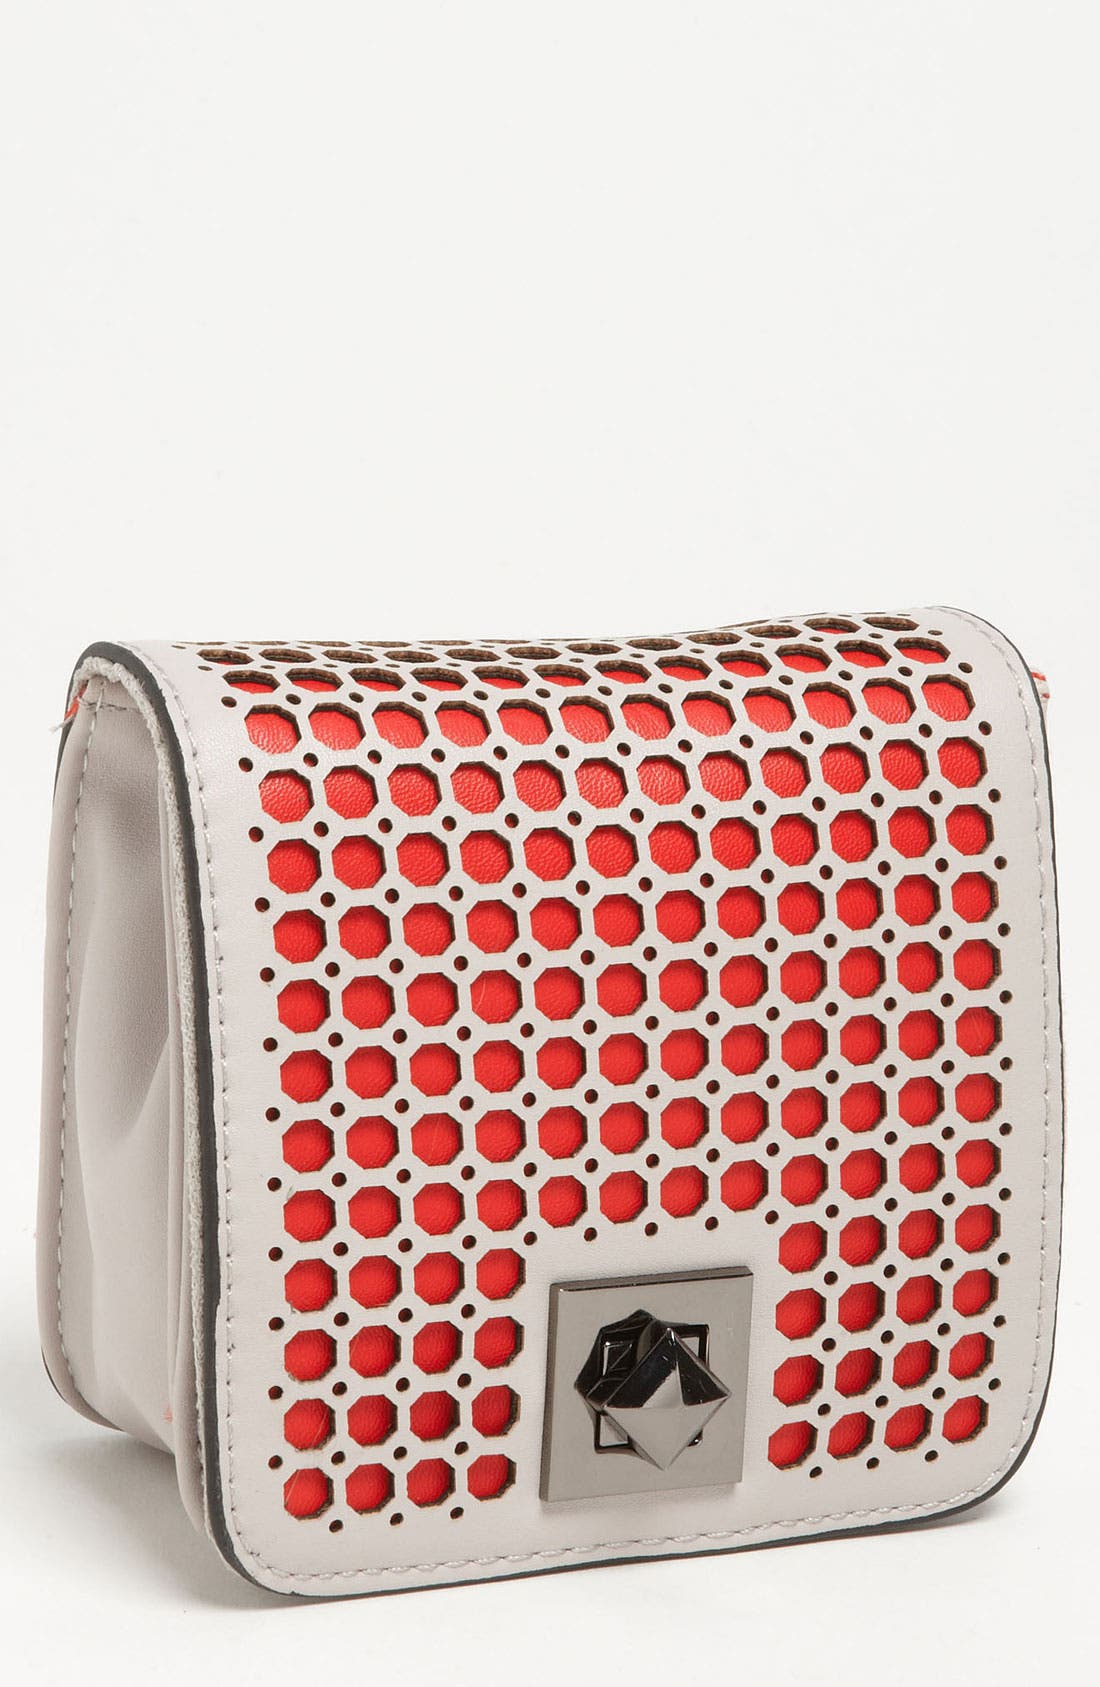 Main Image - POVERTY FLATS by rian Perforated Mini Clutch